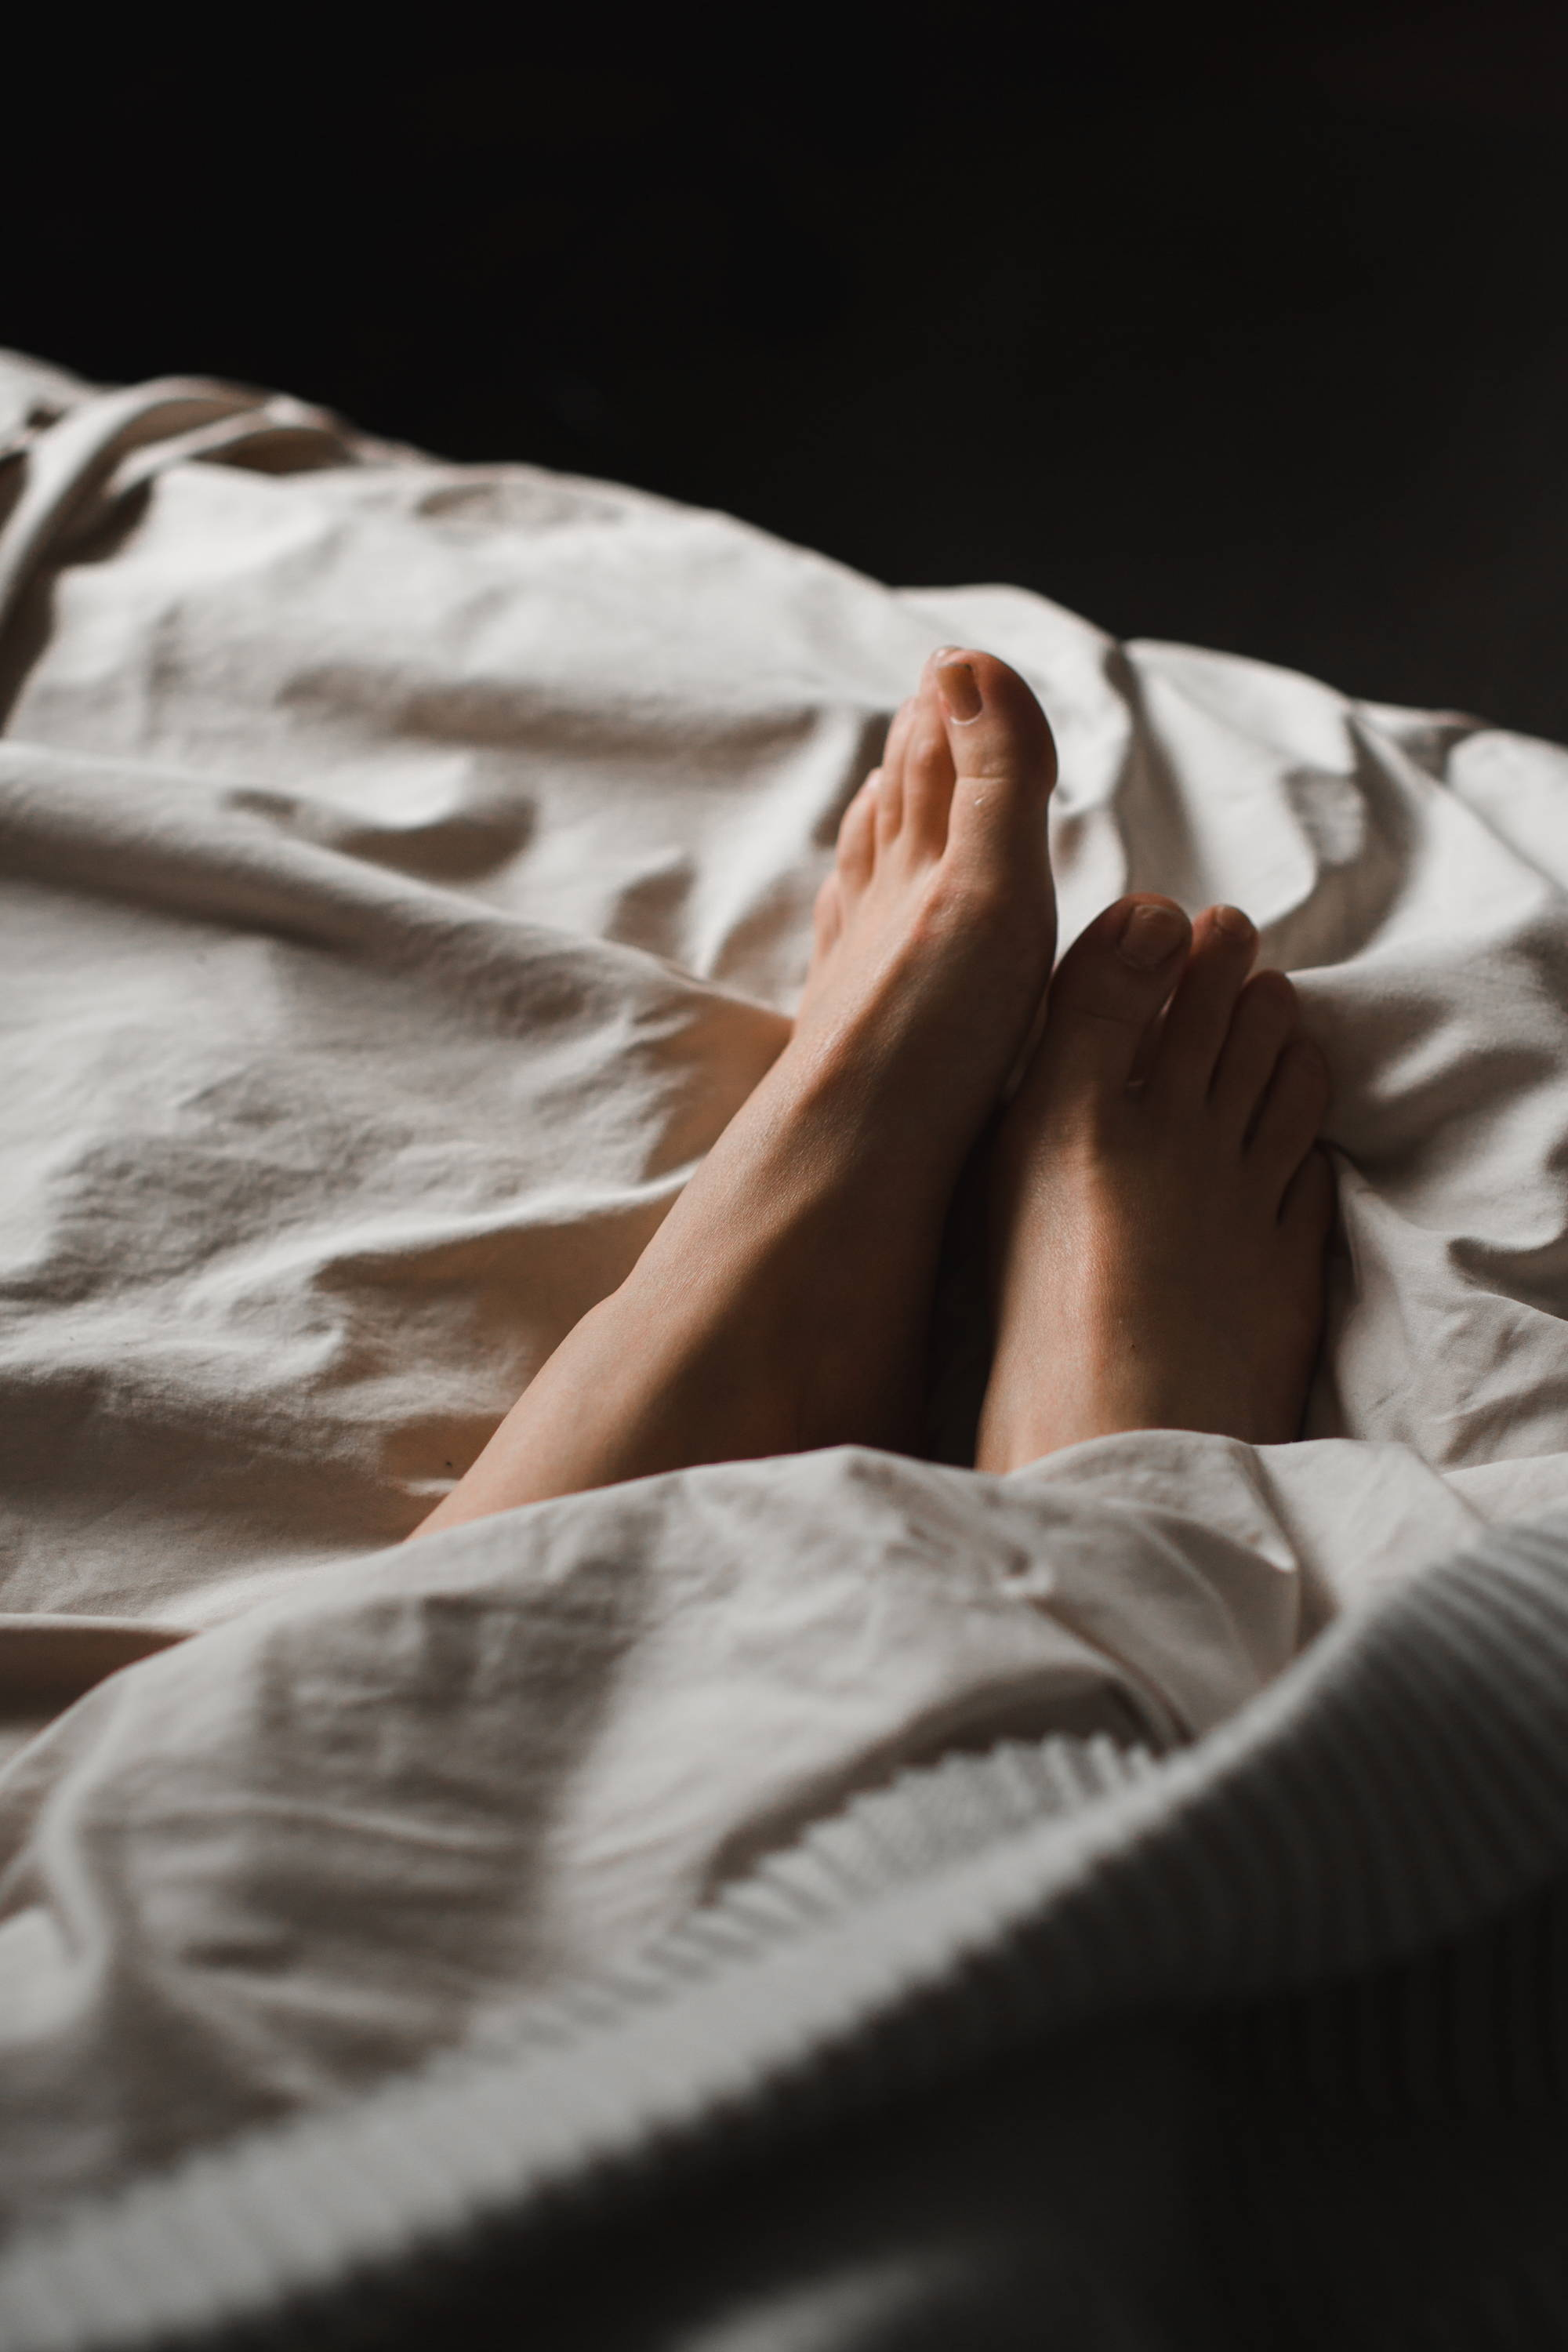 Crop unrecognisable female feet lying in cozy bed - Photo by Владимир Гладков from Pexels